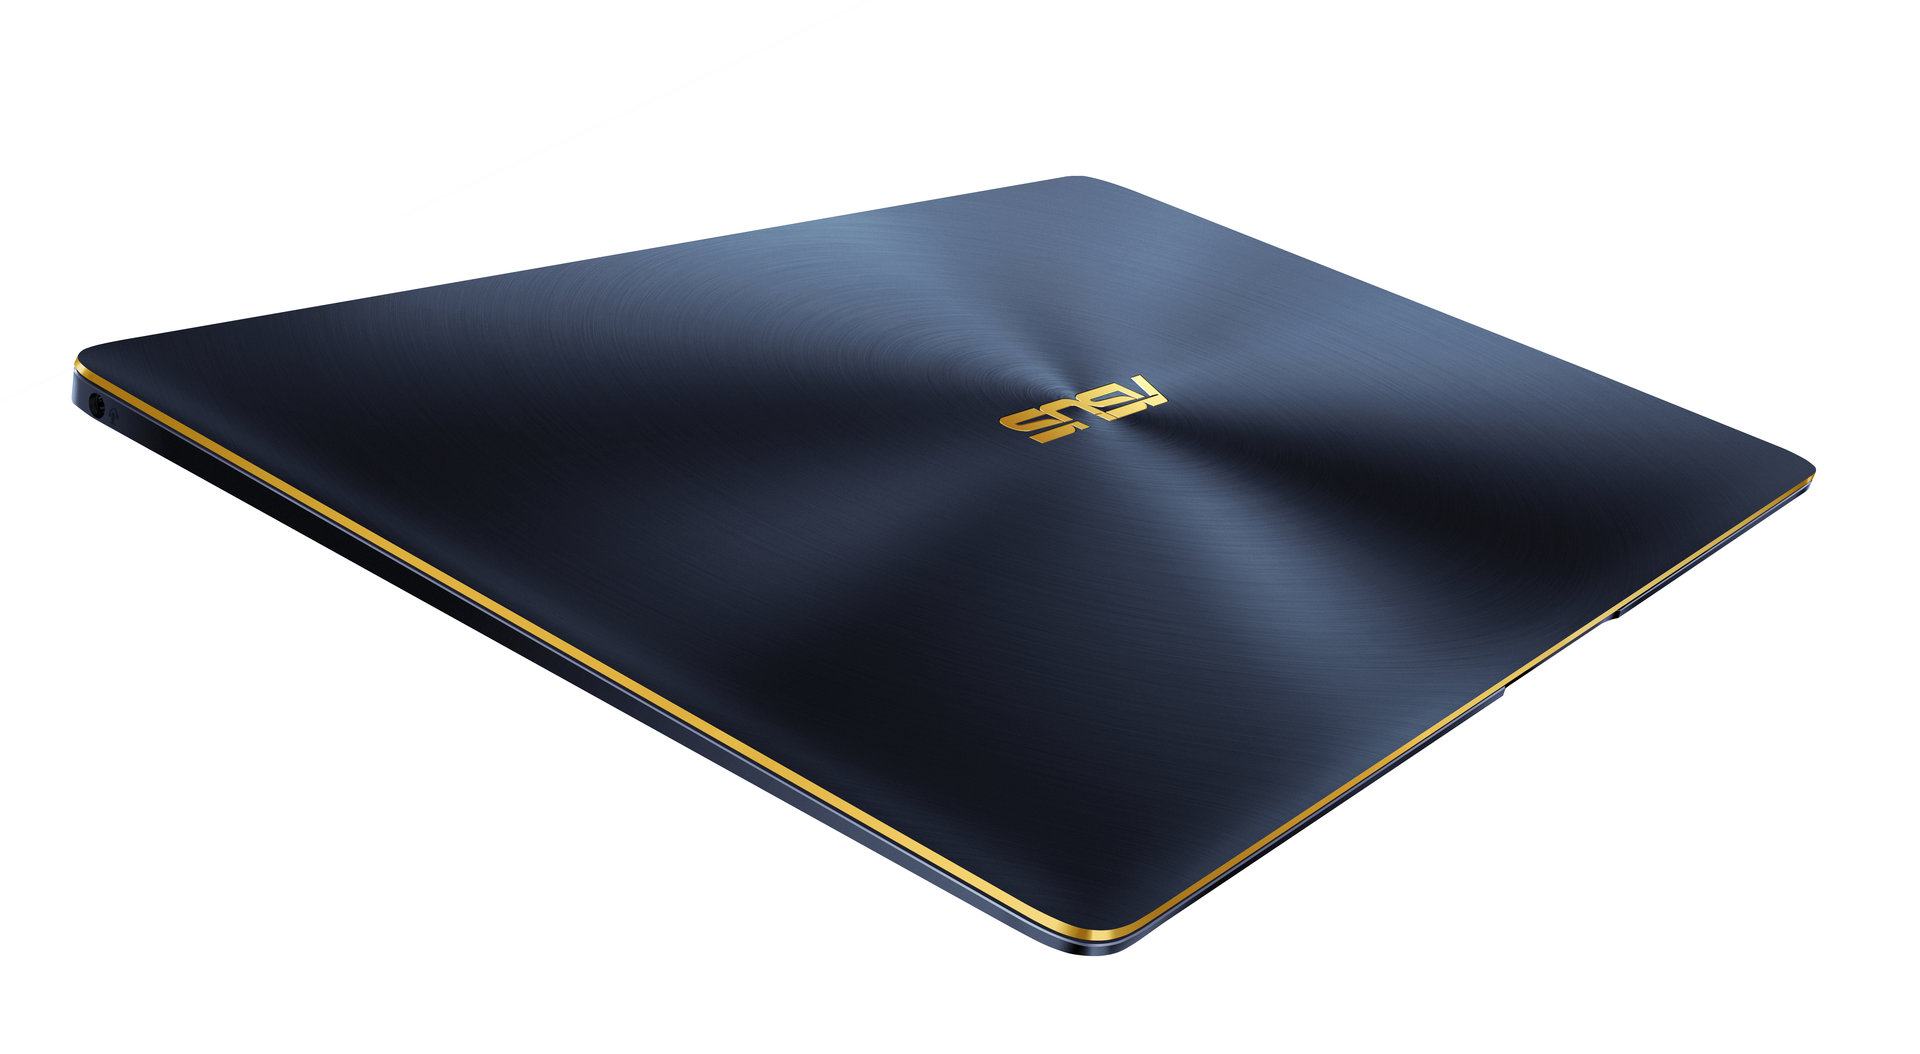 Asus ZenBook 3 (Royal Blue)